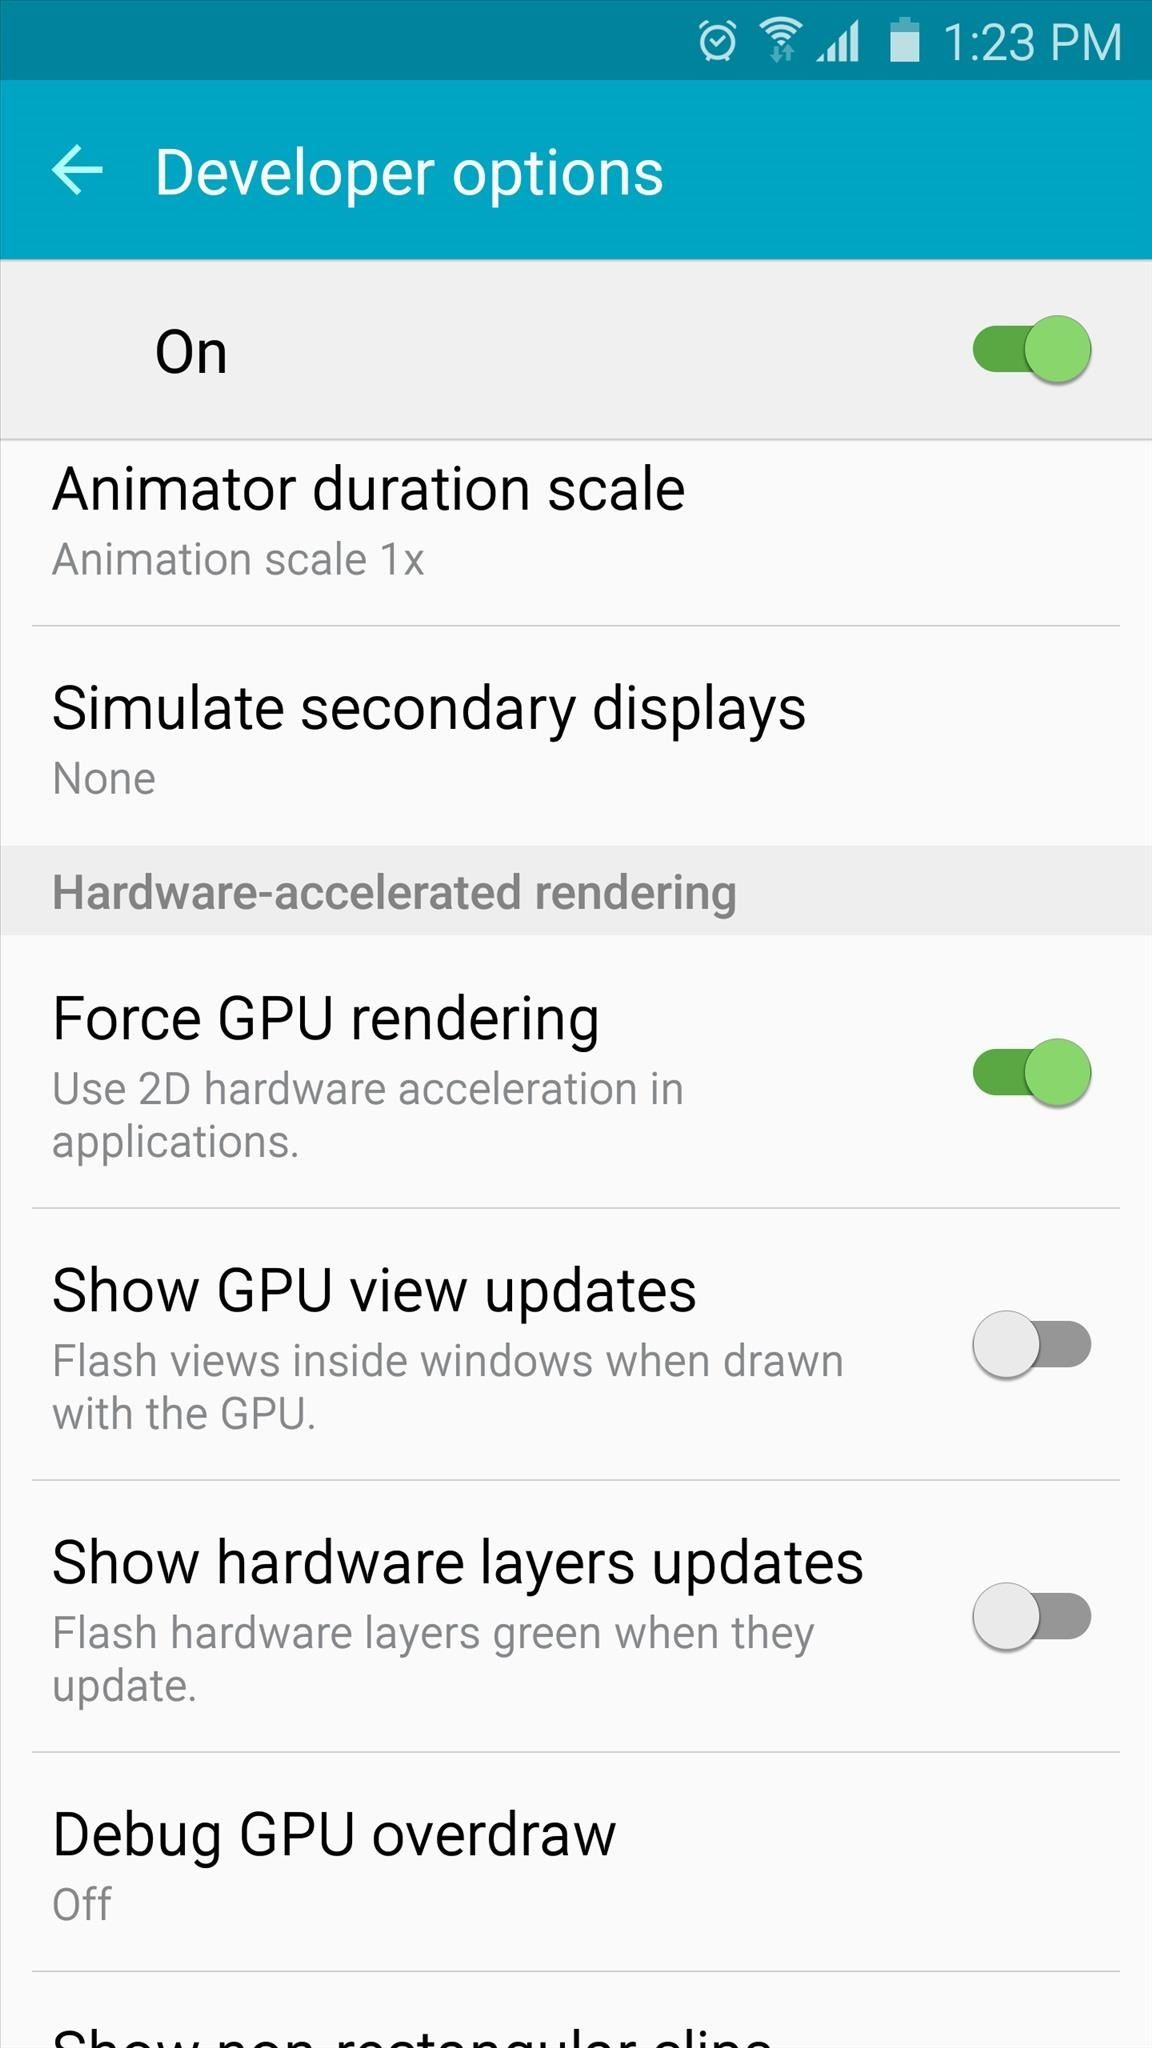 7 Reasons to Unlock Developer Options on Your Android